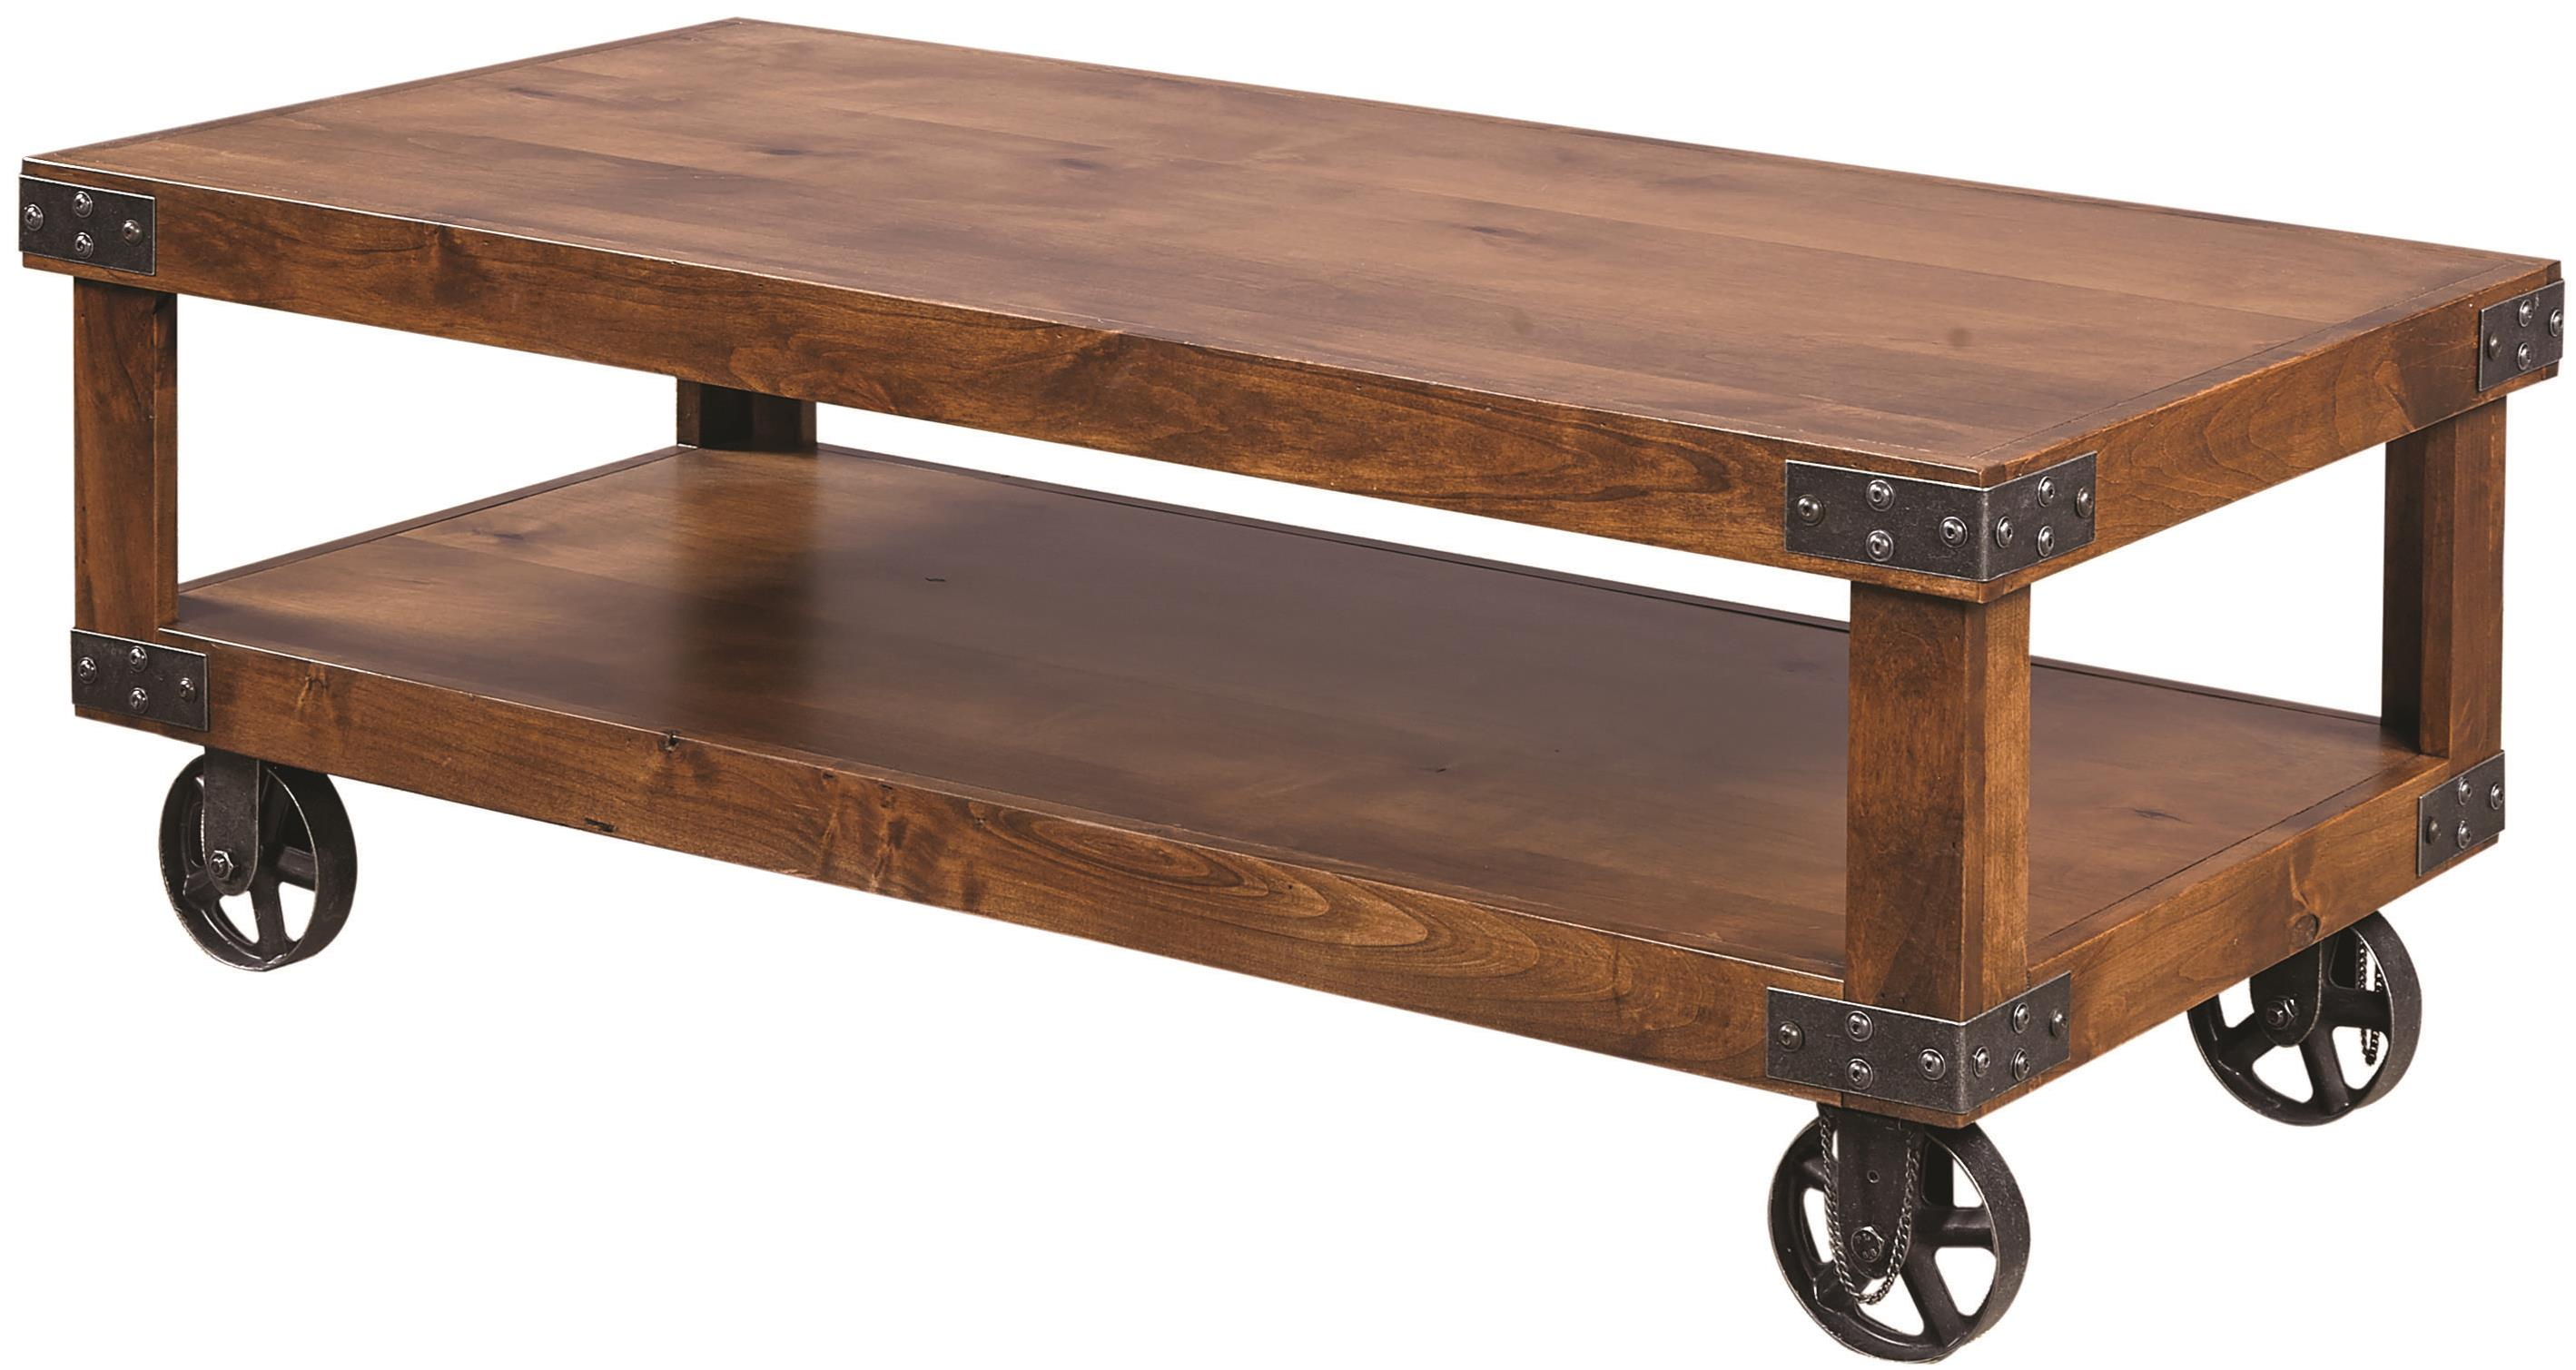 Cocktail Table with Shelf